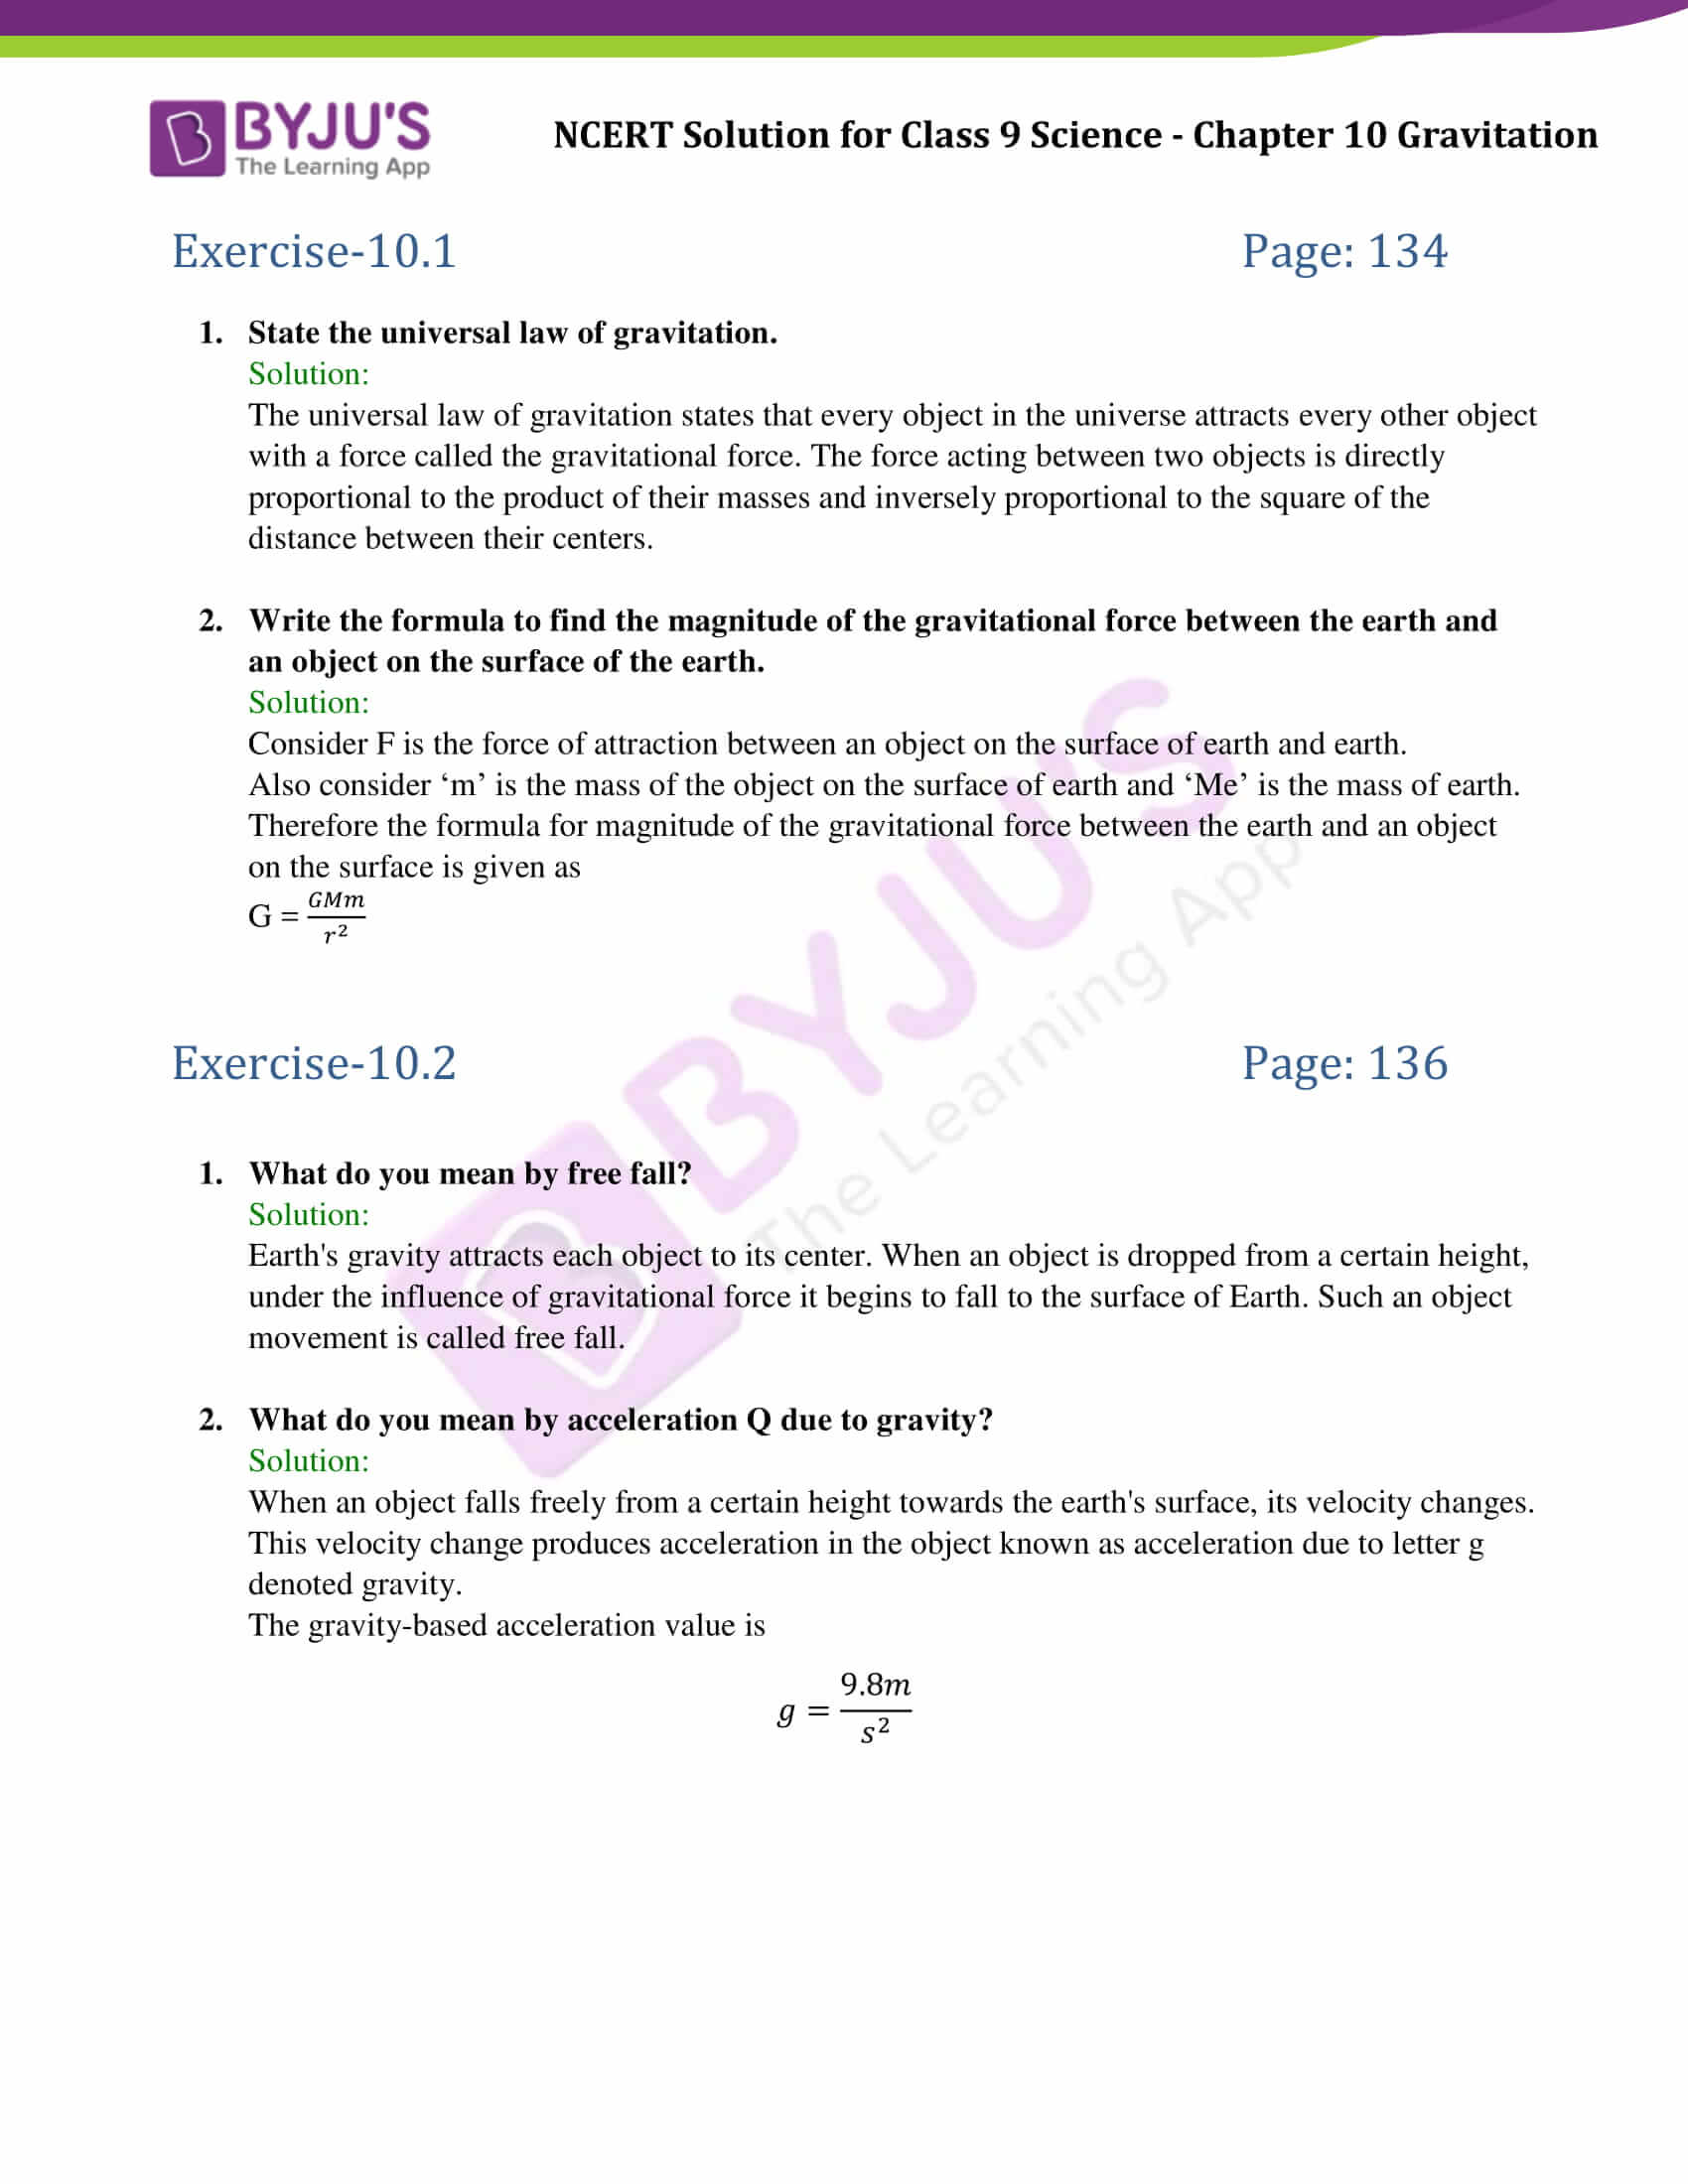 NCERT Solutions Class 9 Science Chapter 10 Gravitation